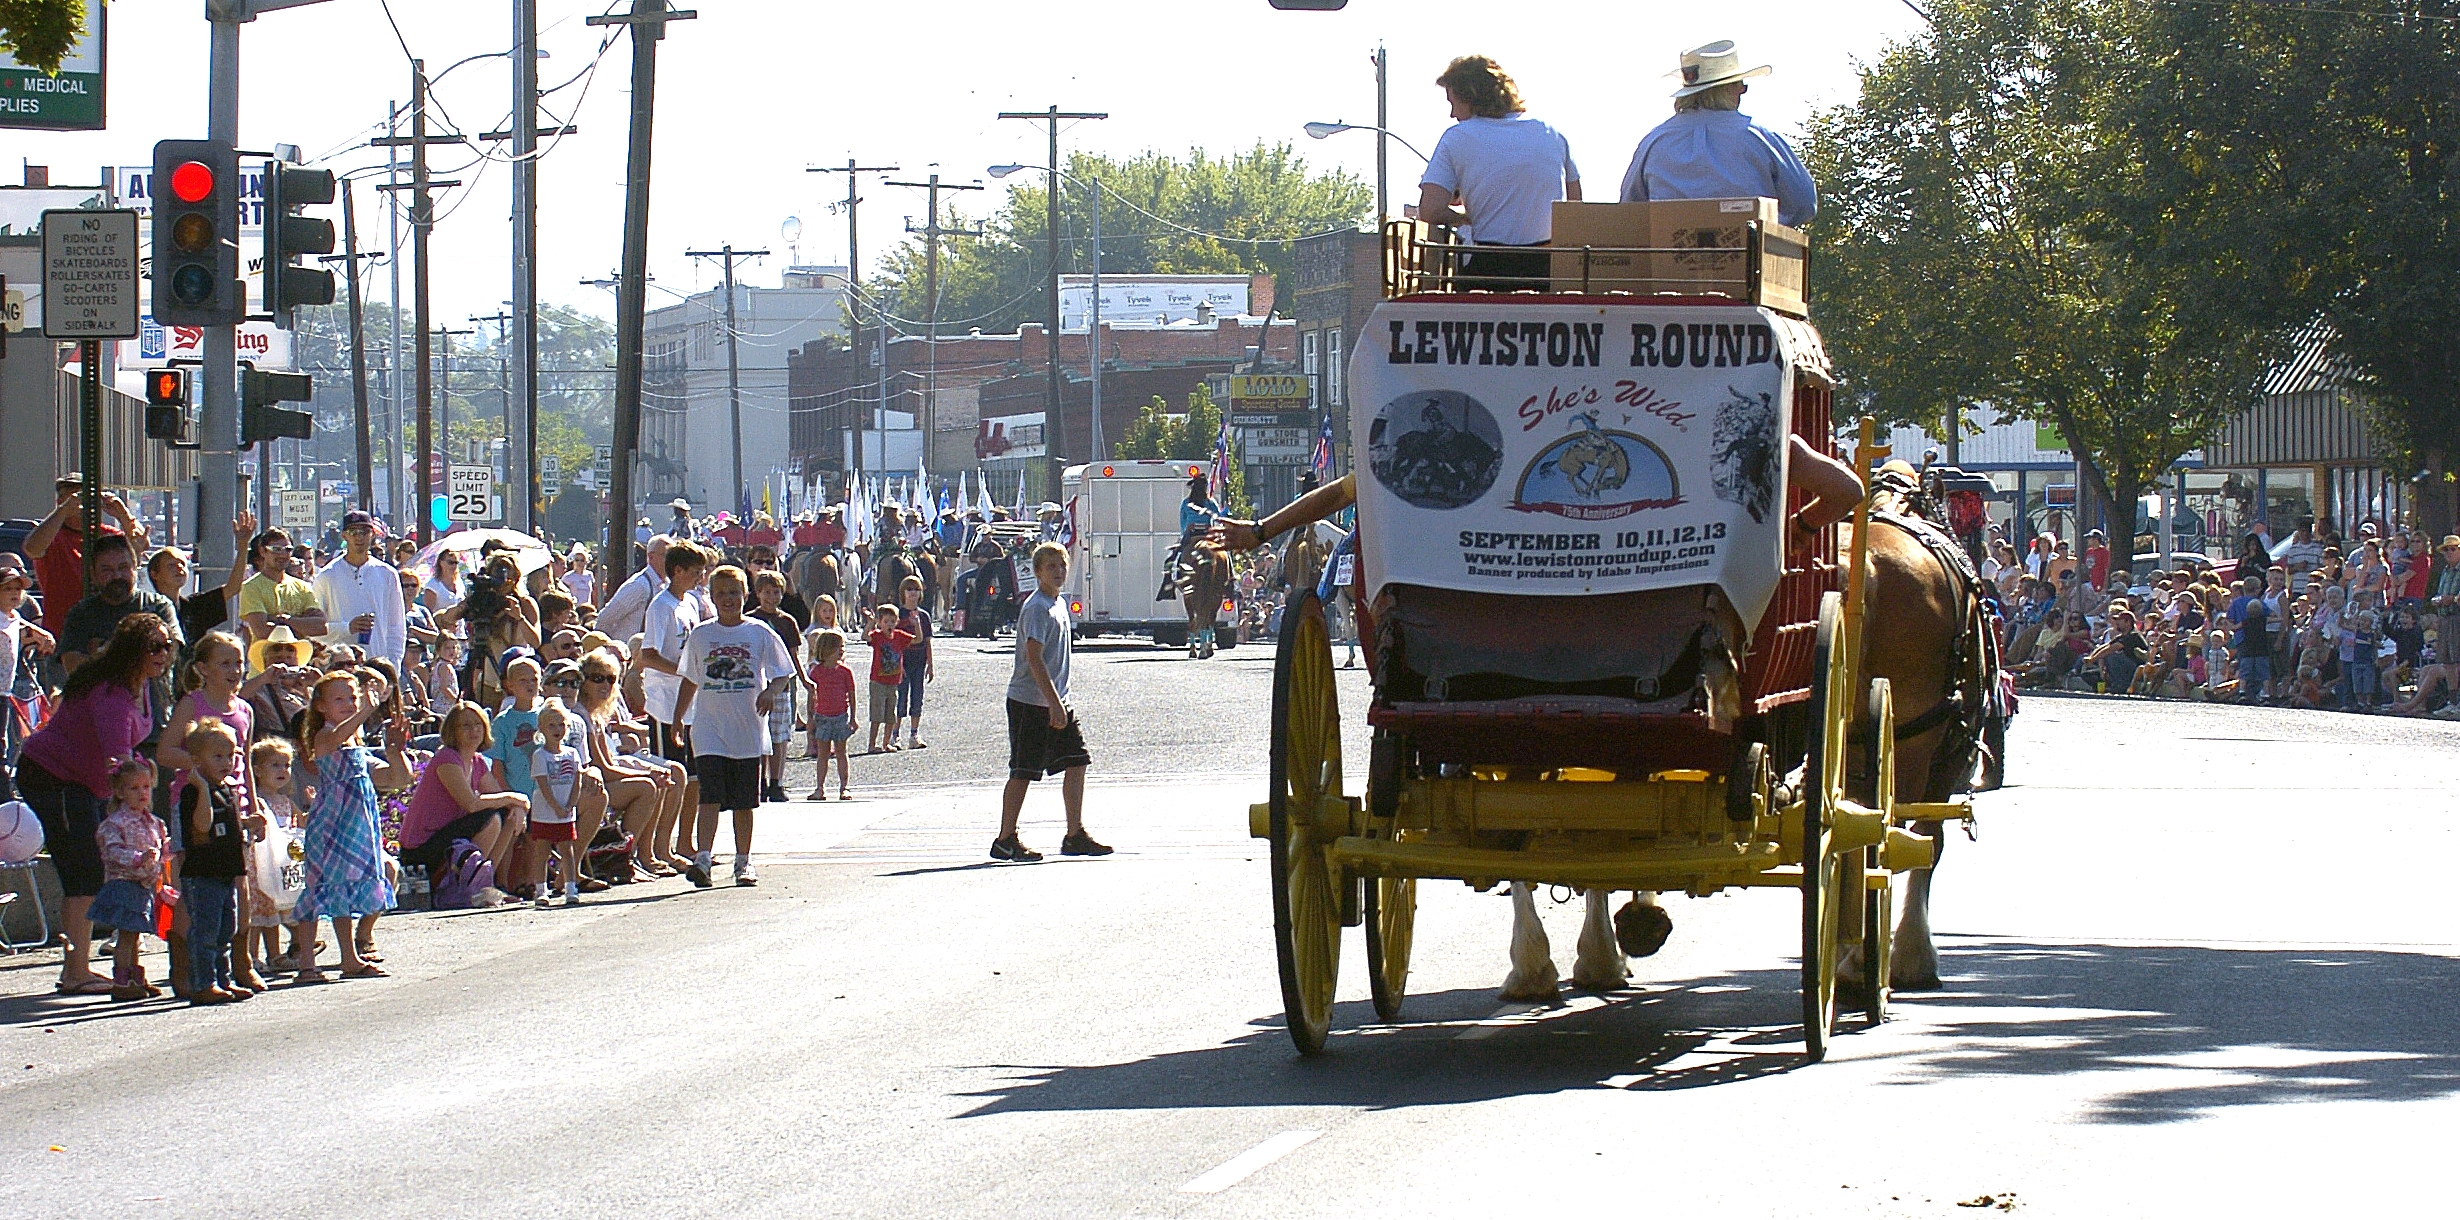 Entries are being accepted for the Lewiston Roundup Parade